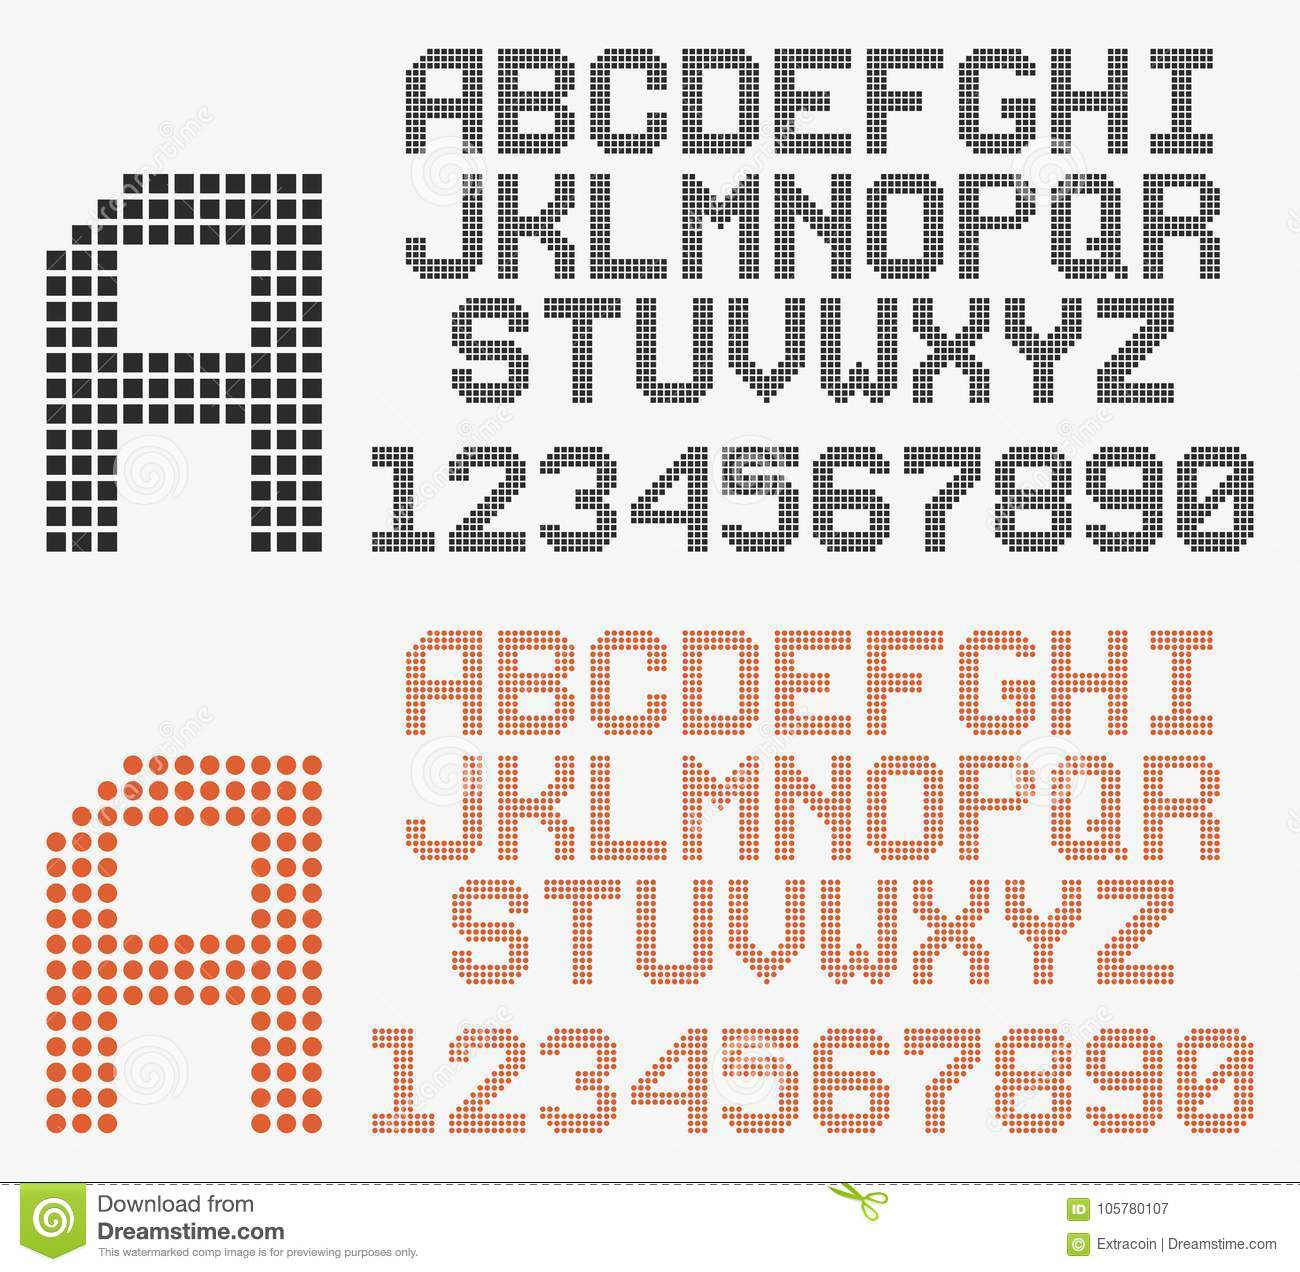 Dotted Font In Retro Style, Rounded And Pixeled Alphabet